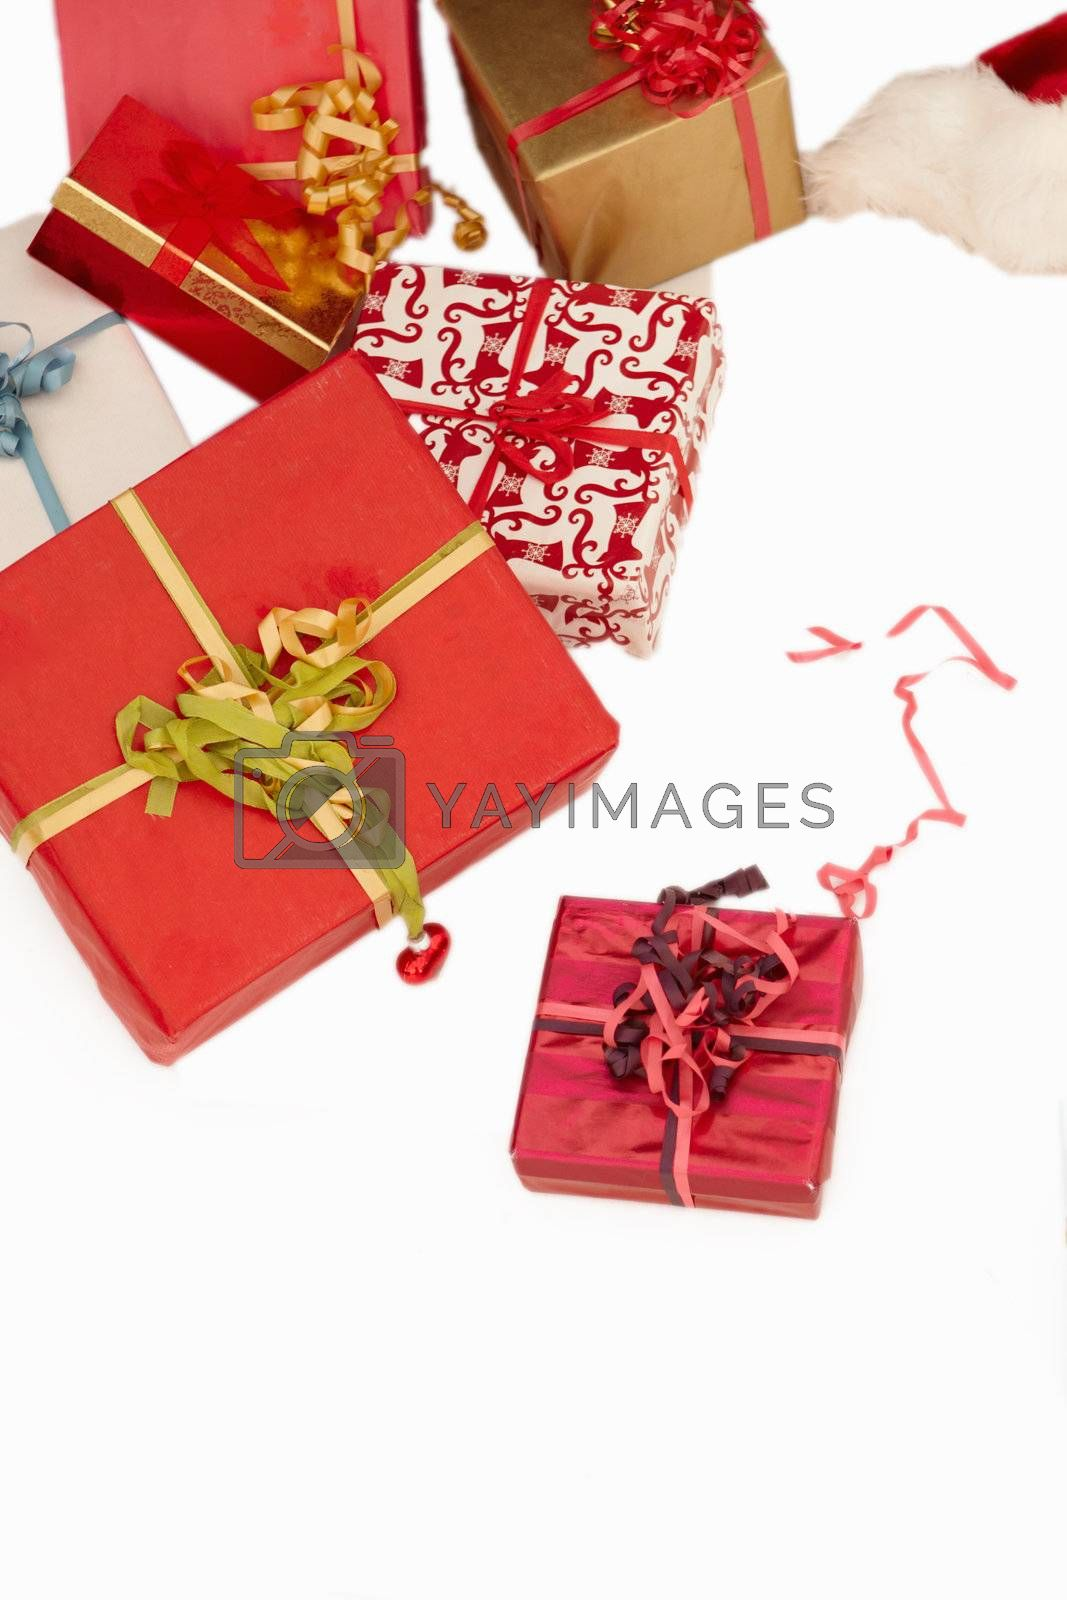 Royalty free image of Christmas presents - On white background by FreedomImage